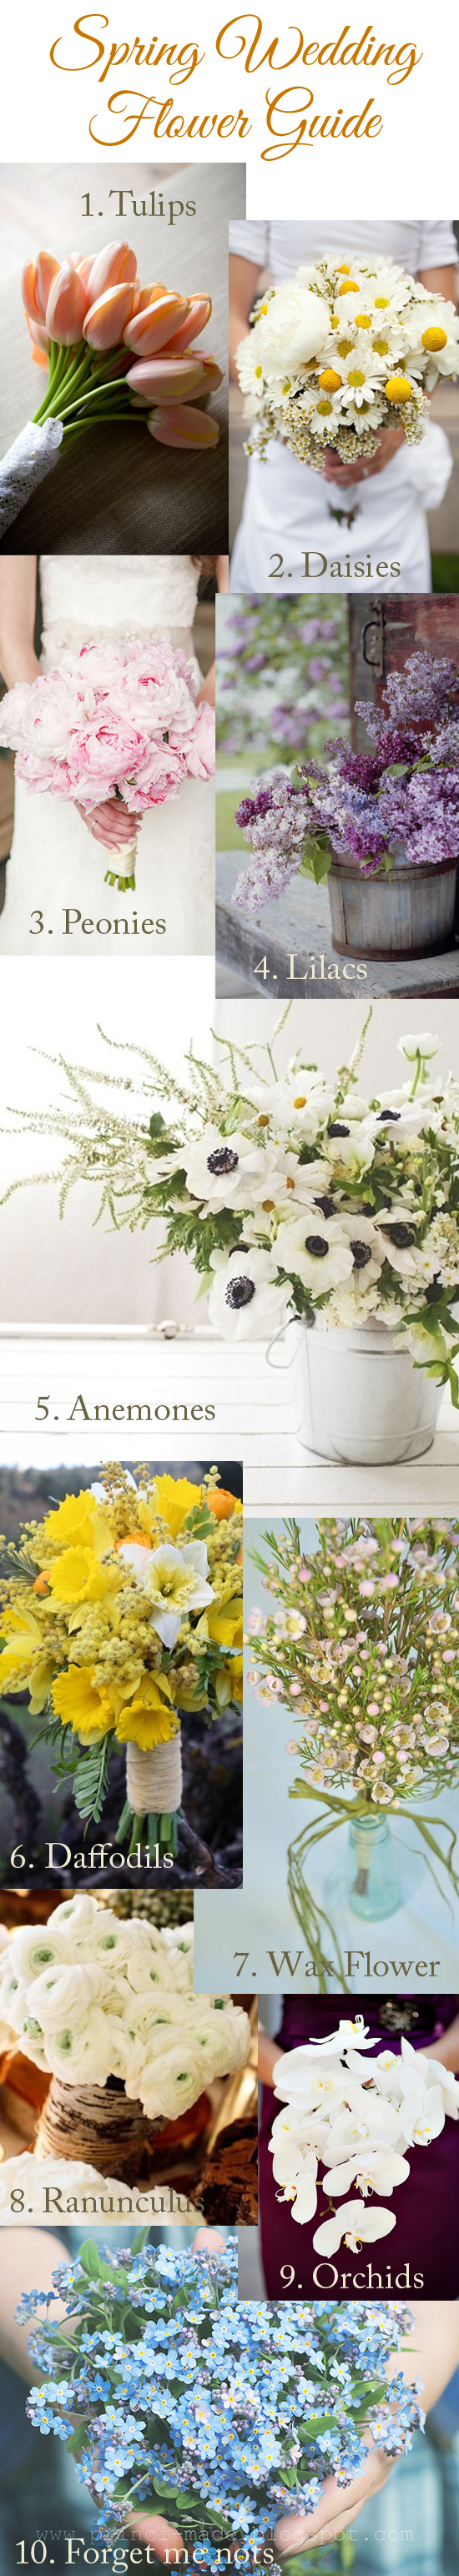 Spring Wedding Flower Guide